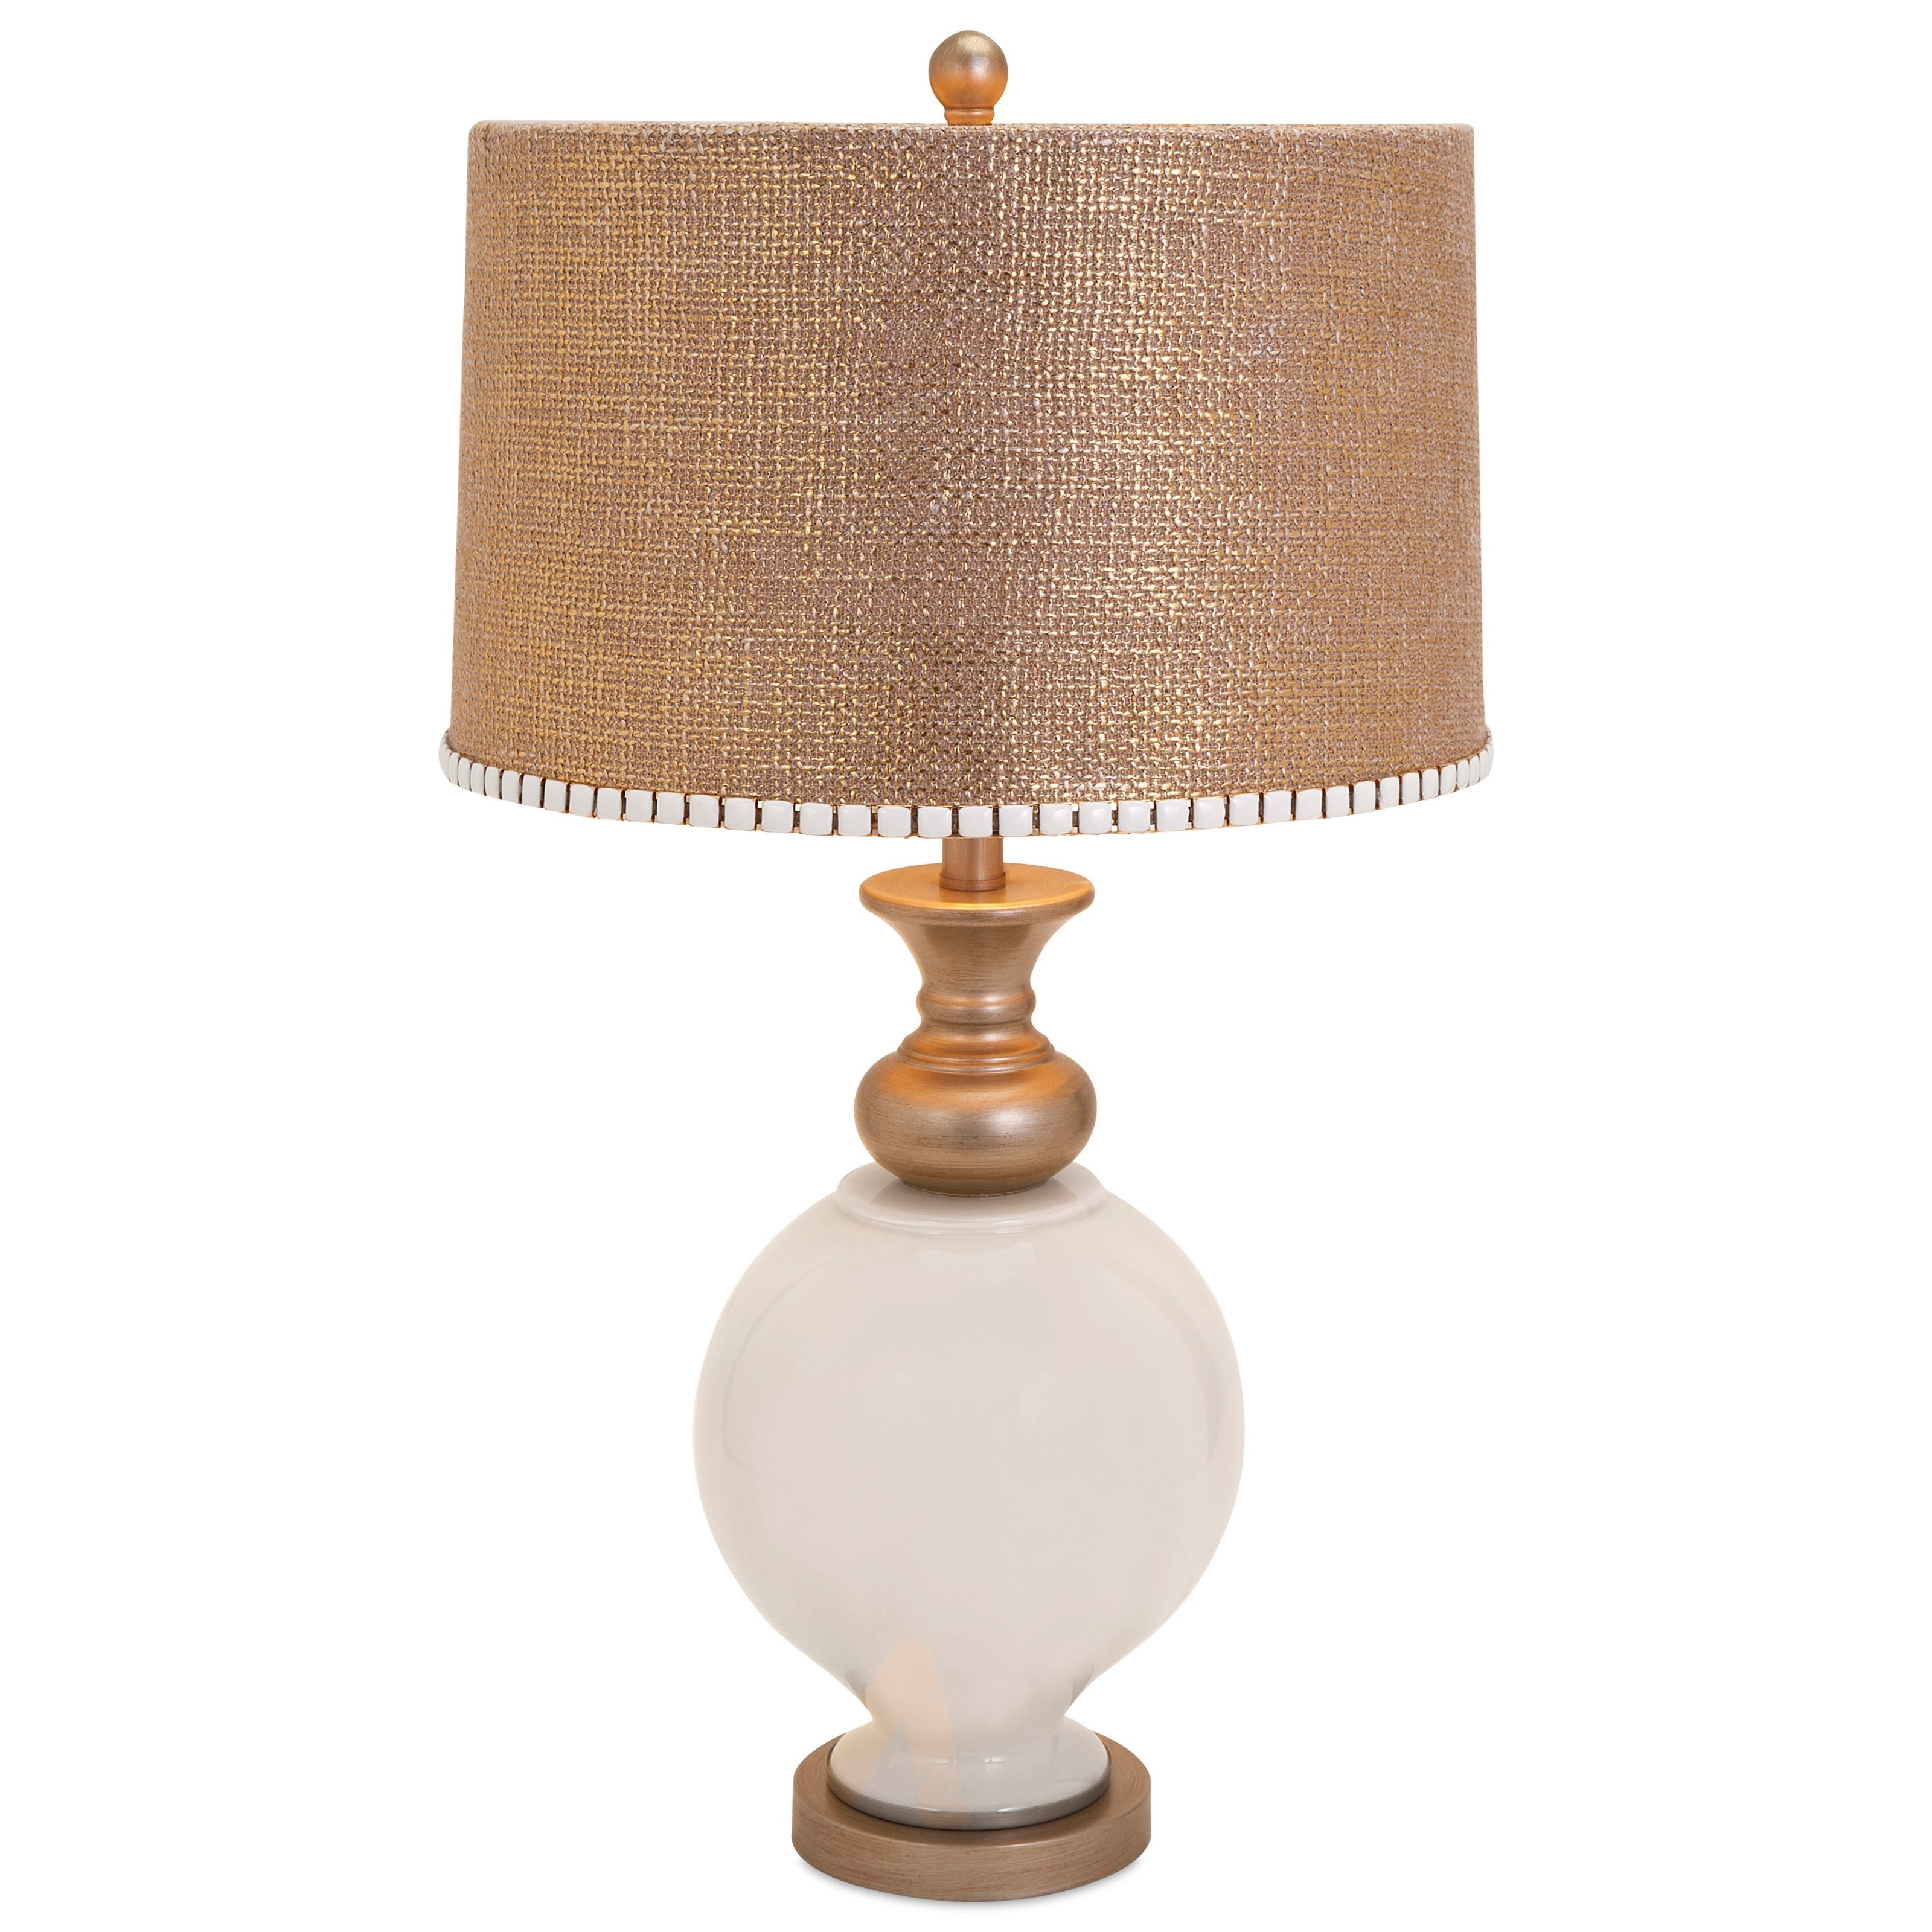 Becky Fletcher Lily Glass Lamp by IMAX Worldwide Home at Alison Craig Home Furnishings